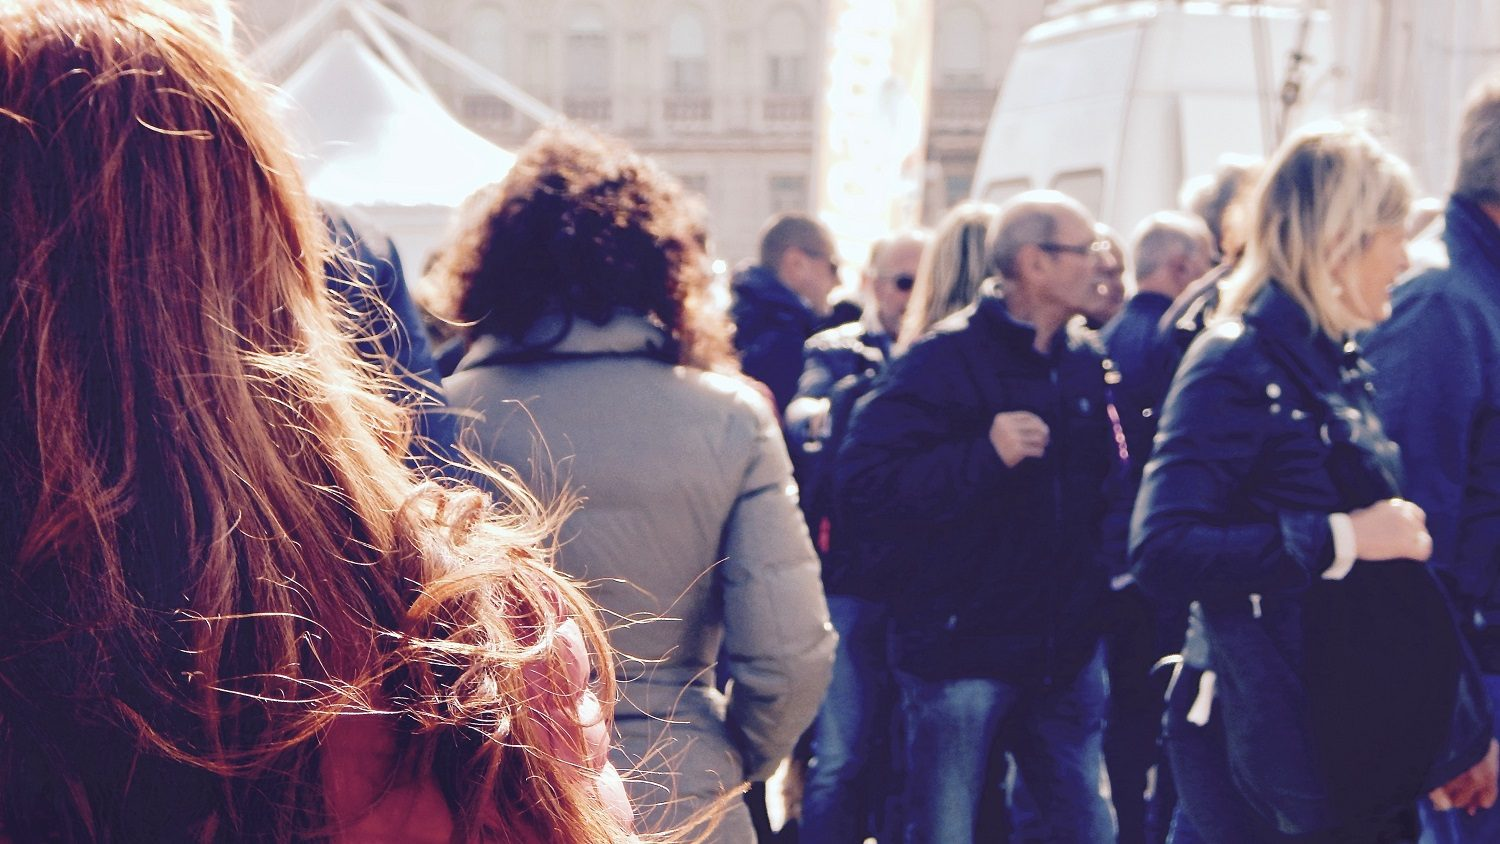 Person with red hair looks into a crowd of people